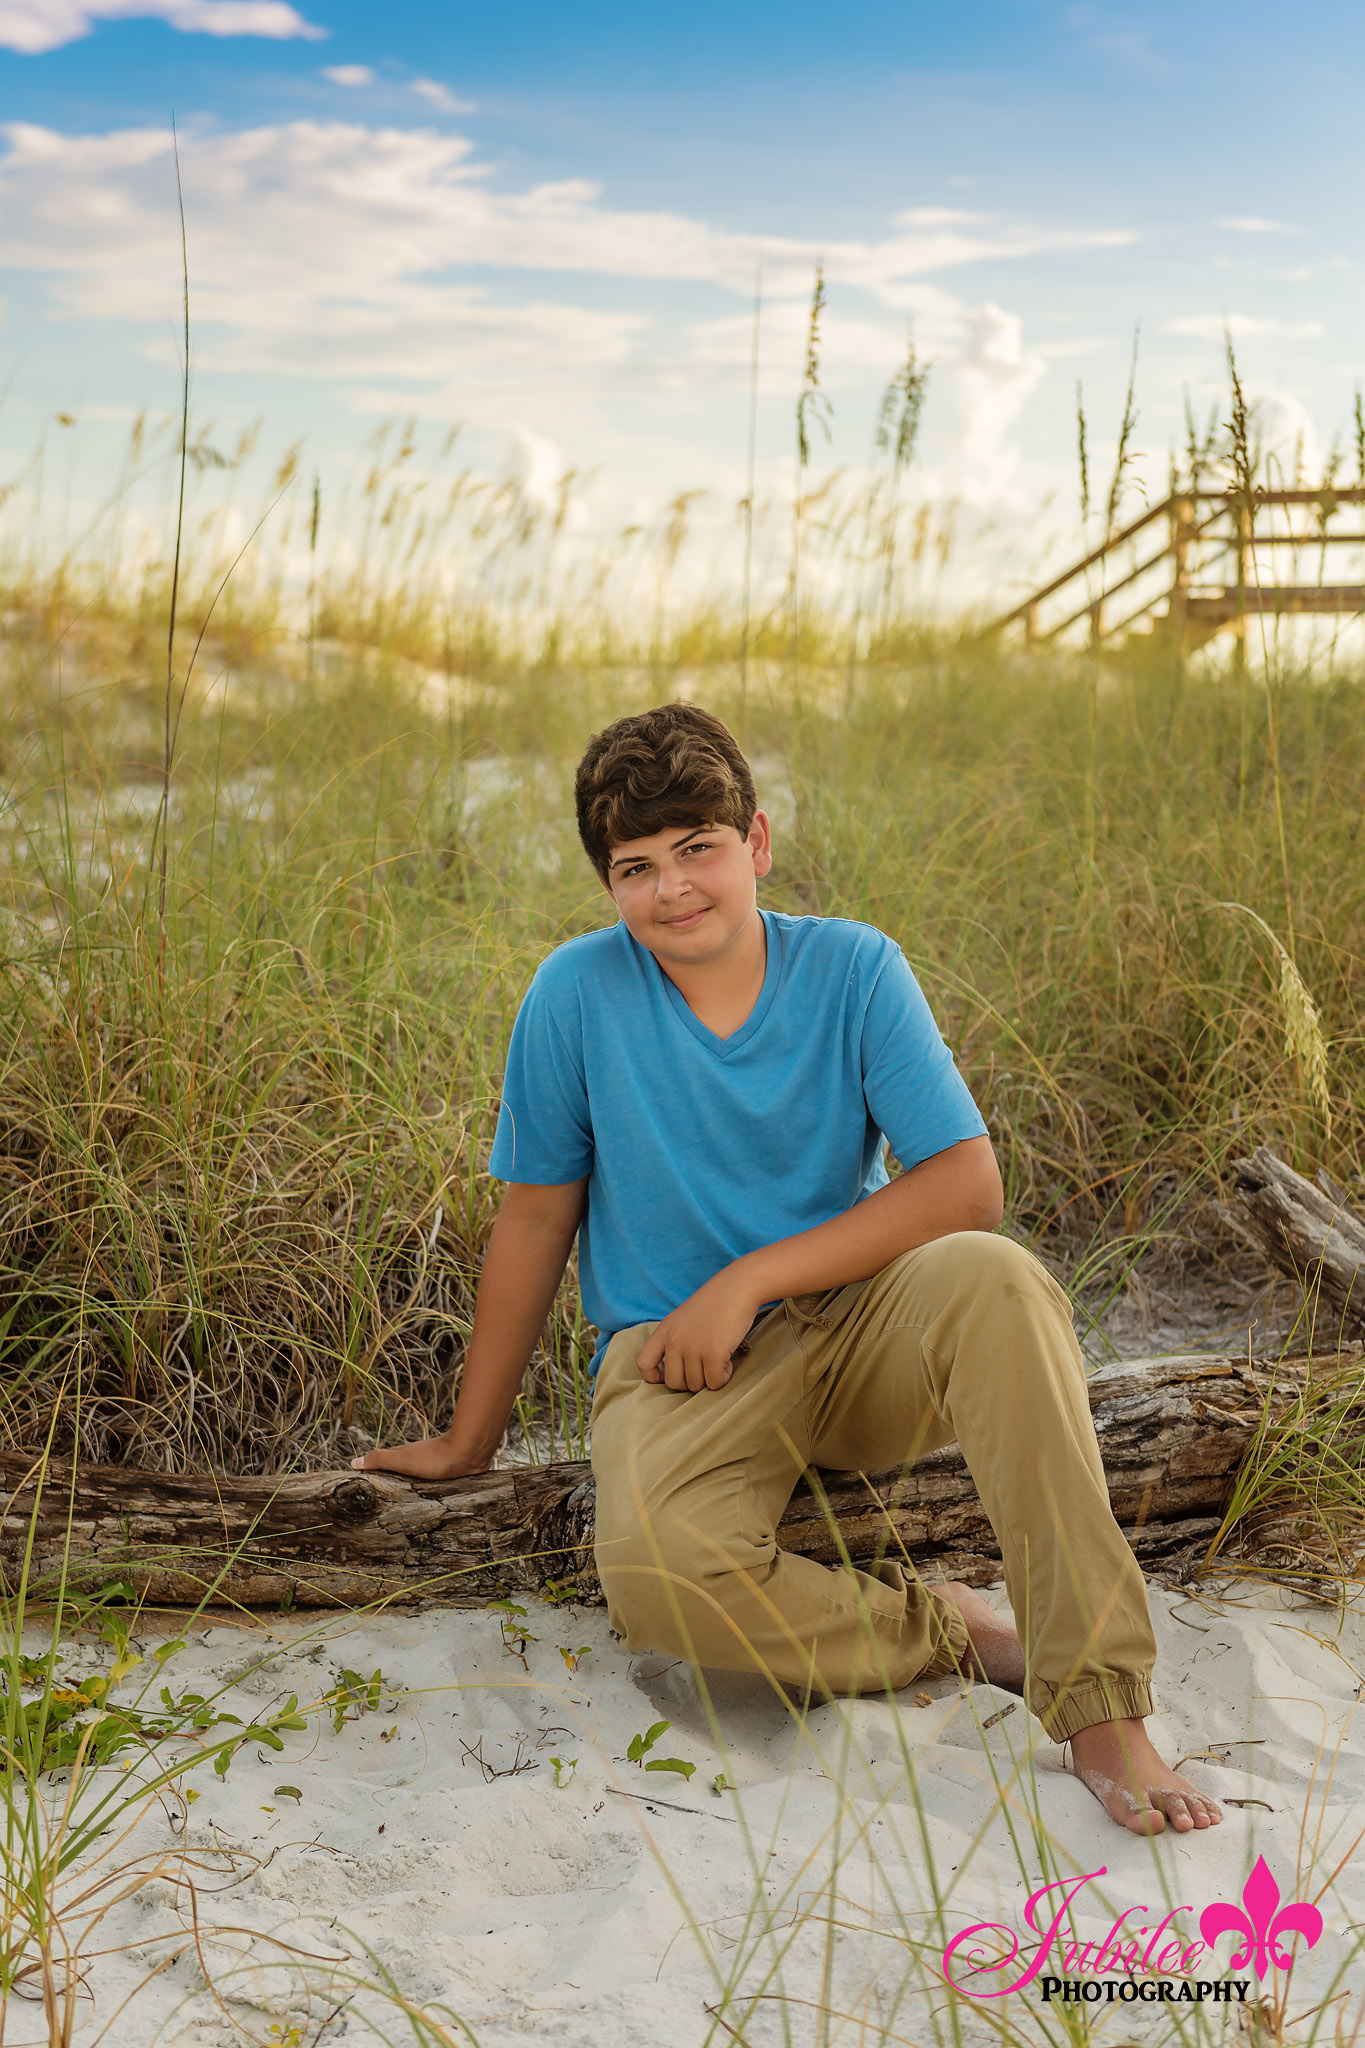 Destin_Photographer_1002